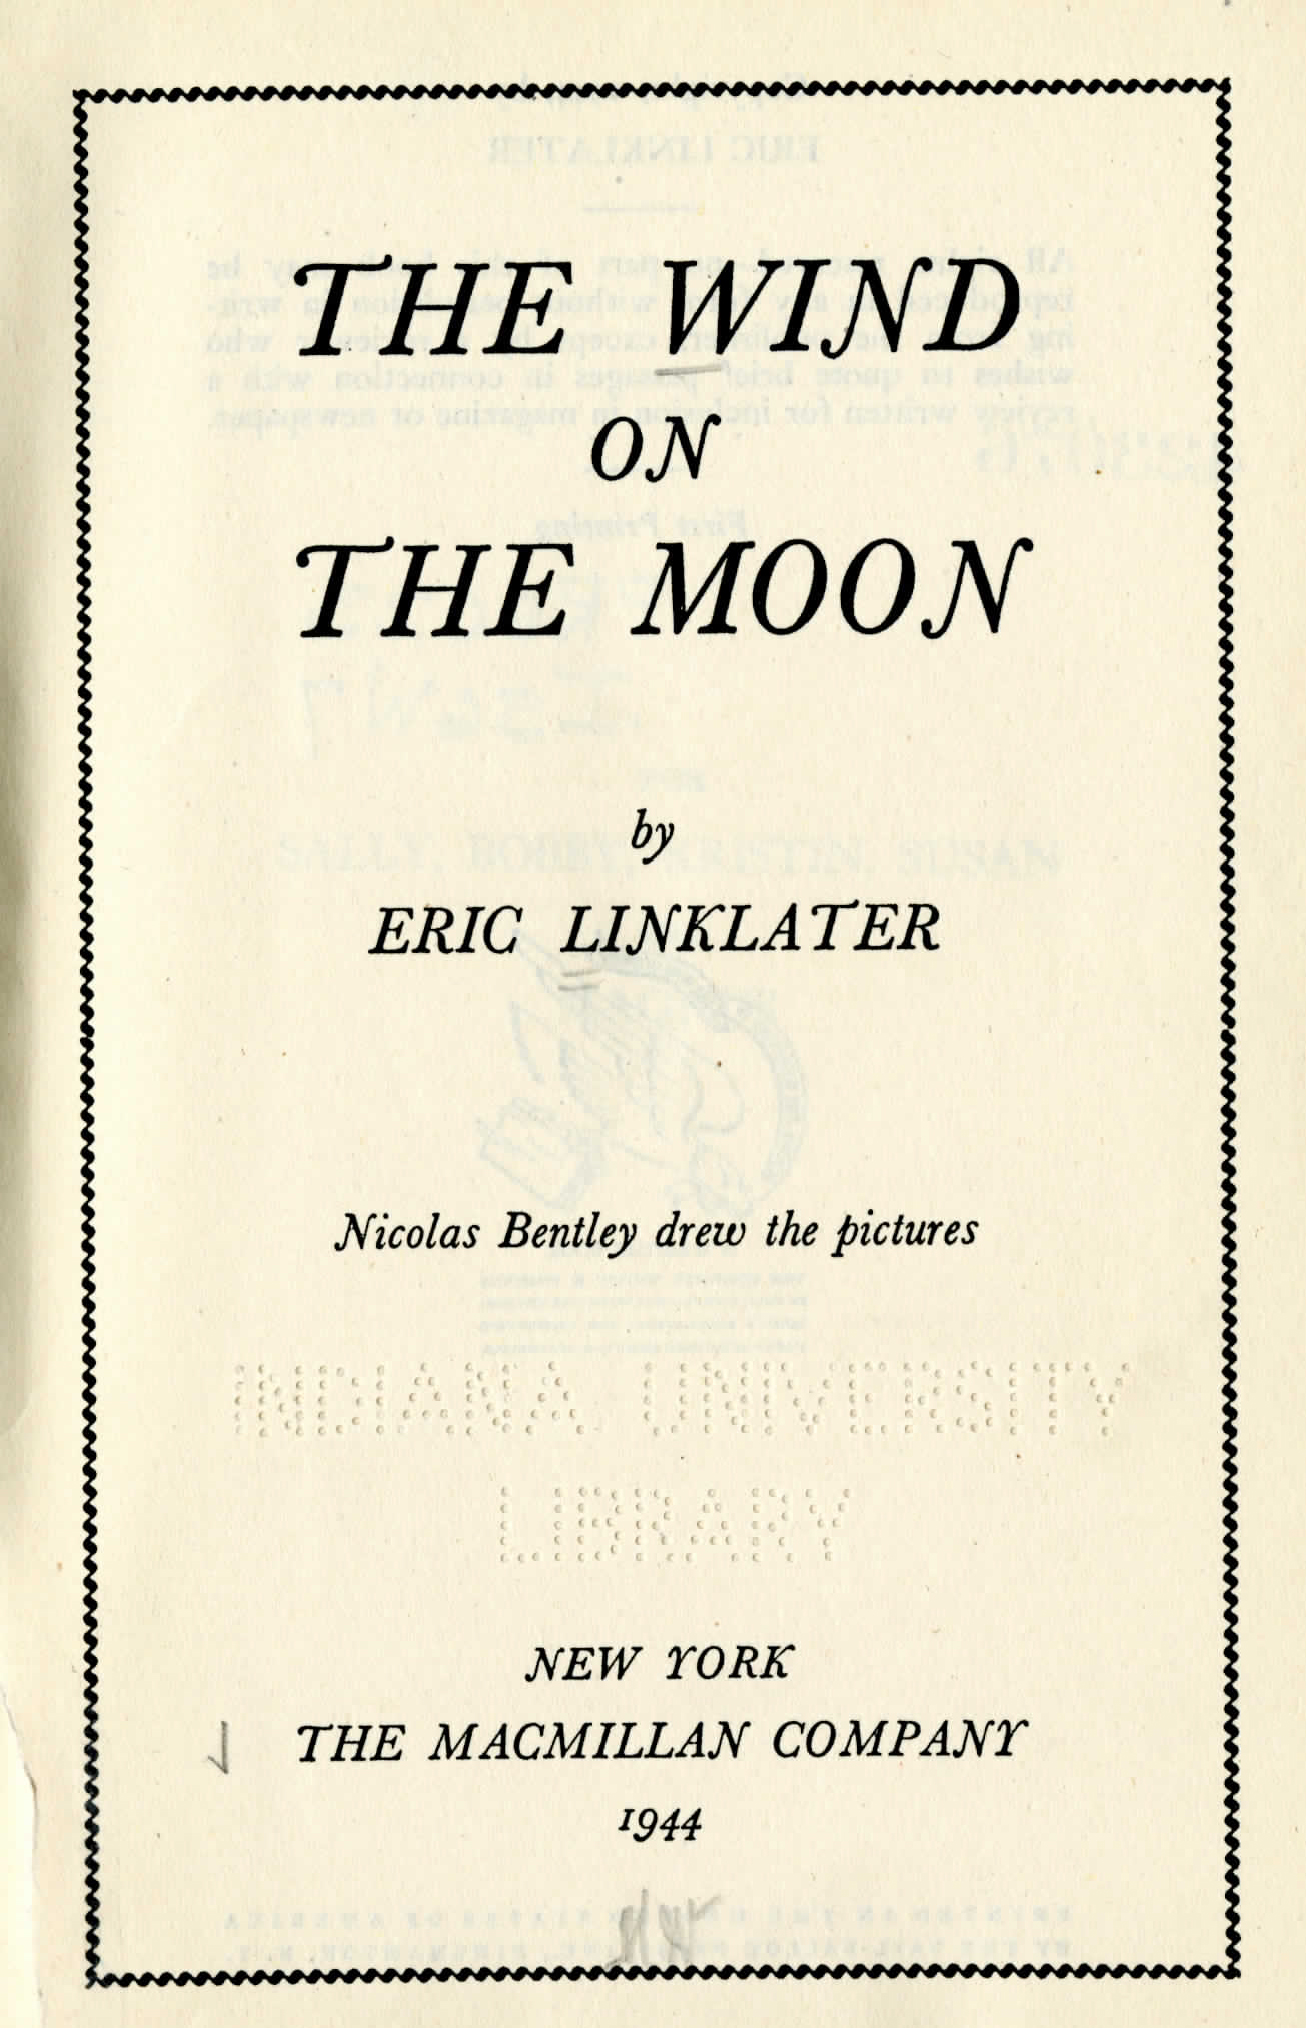 dogs and research follies ✎ e lingle craig preservation lab blog title page for the wind on the moon by eric linklater